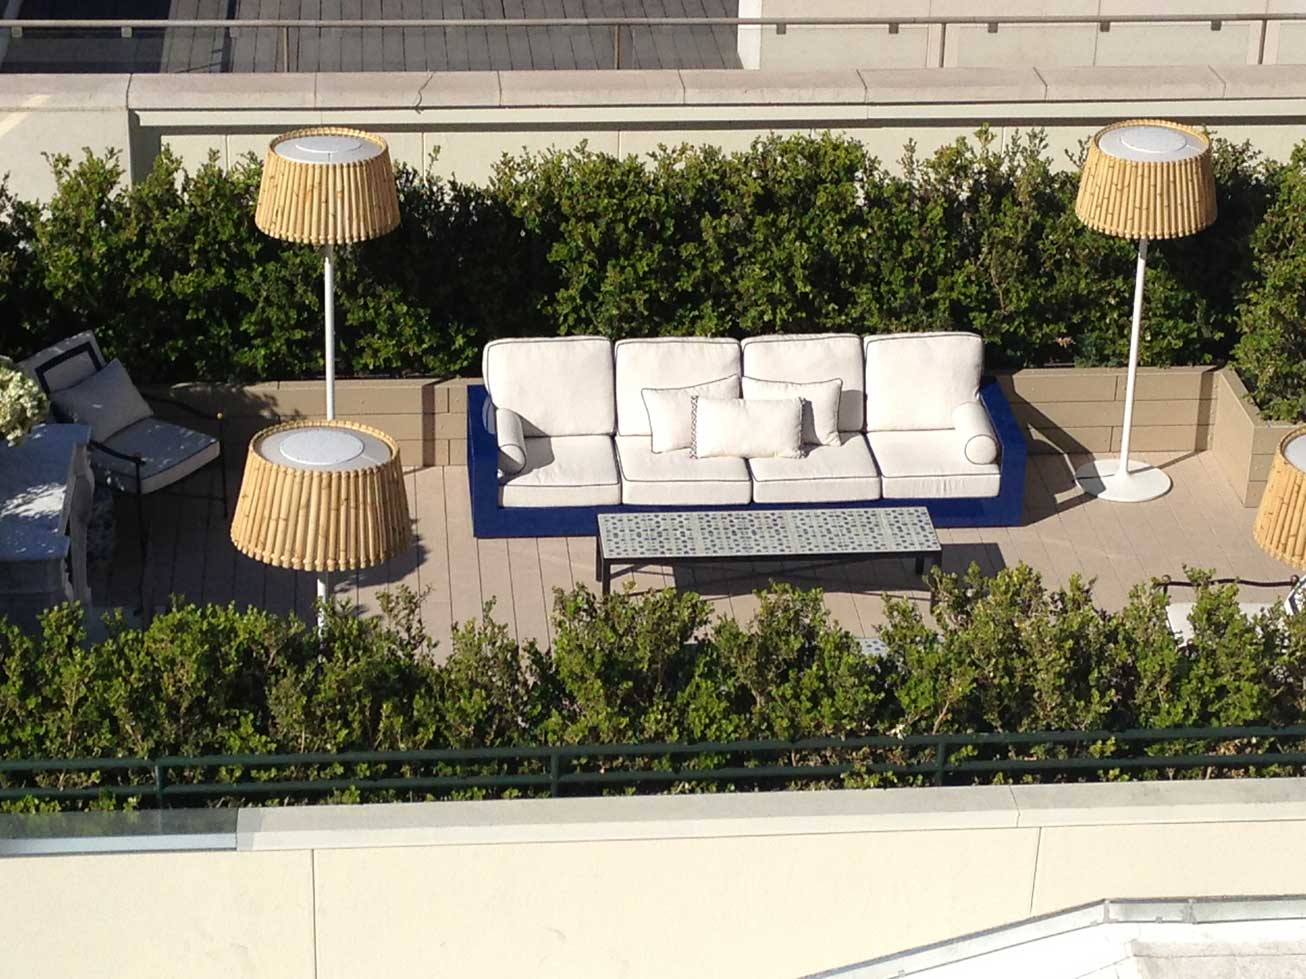 View from the Luxe Hotel looking down on the Chanel rooftop. Check out that cool outdoor living room.